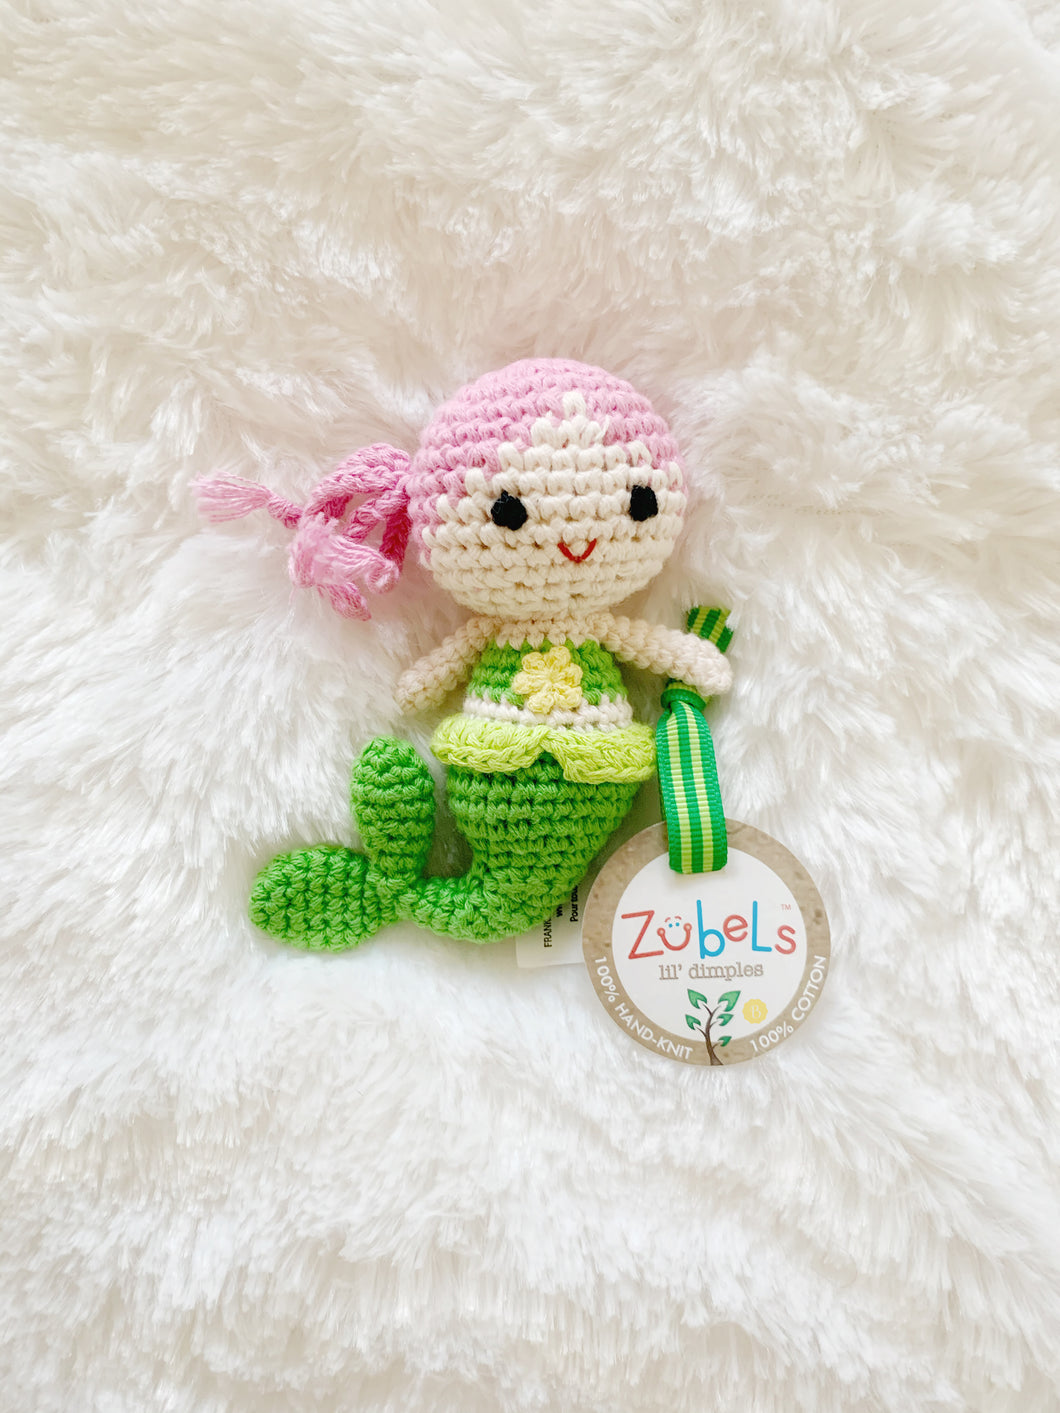 Mermaid Crochet Dimple Rattle